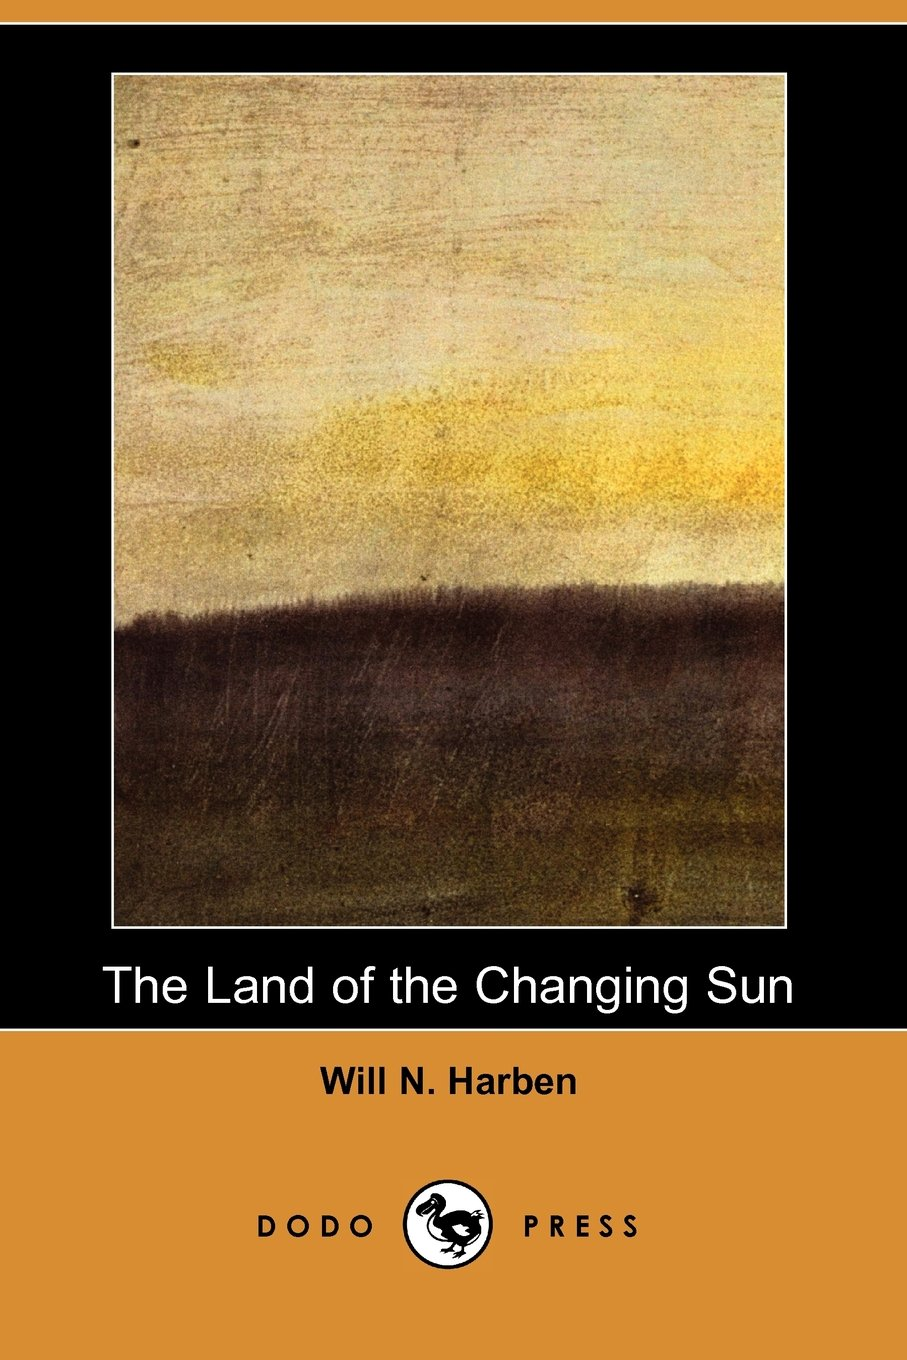 The Land of the Changing Sun (Dodo Press) PDF